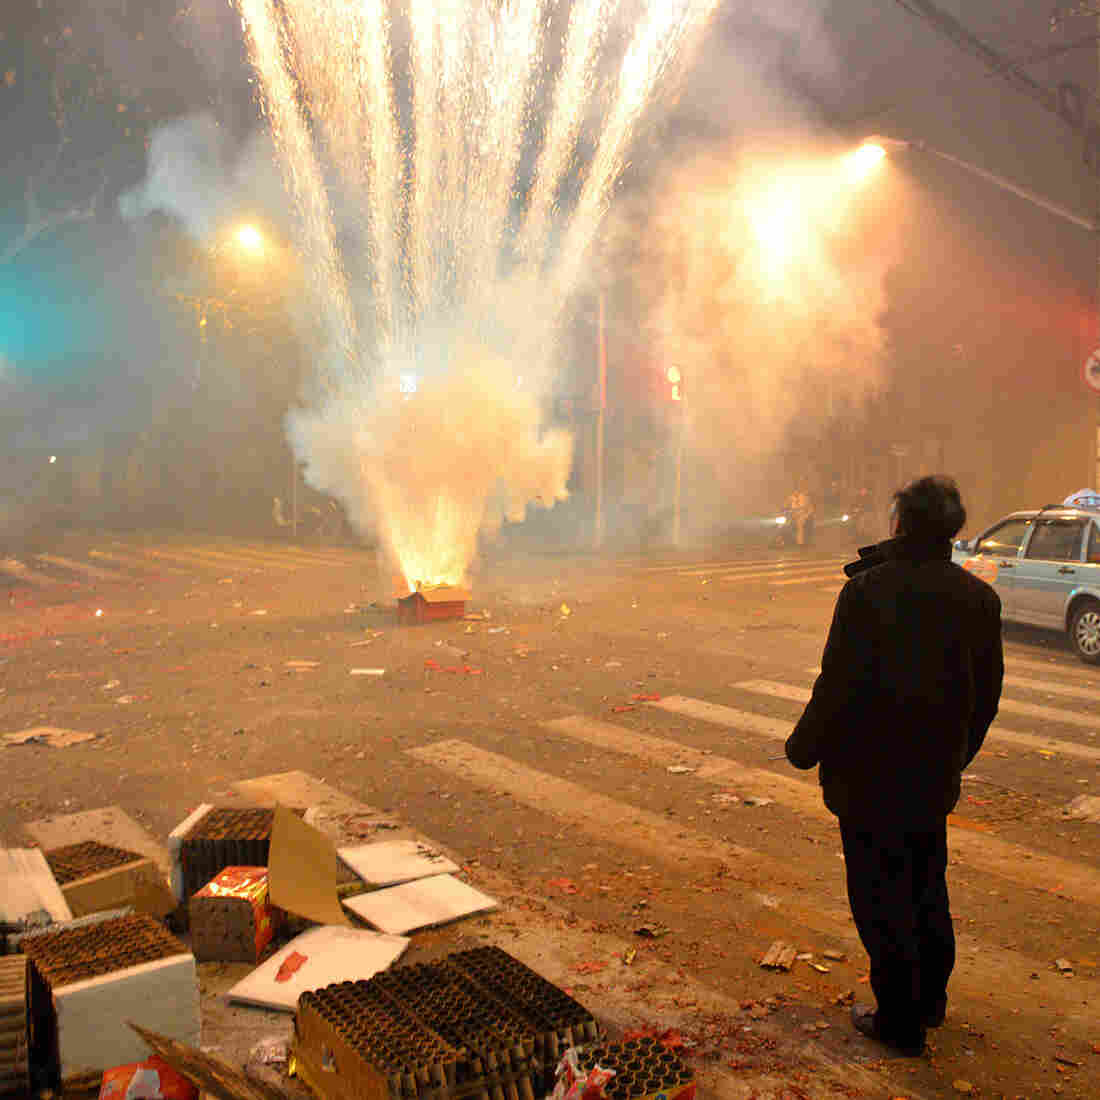 Fireworks explode in a Shanghai street on Thursday, the eve of the Lunar New Year. Setting off firecrackers is meant to ward off evil spirits and bring good luck. But many Chinese say they won't buy firecrackers this year, owing to growing worries about air quality.